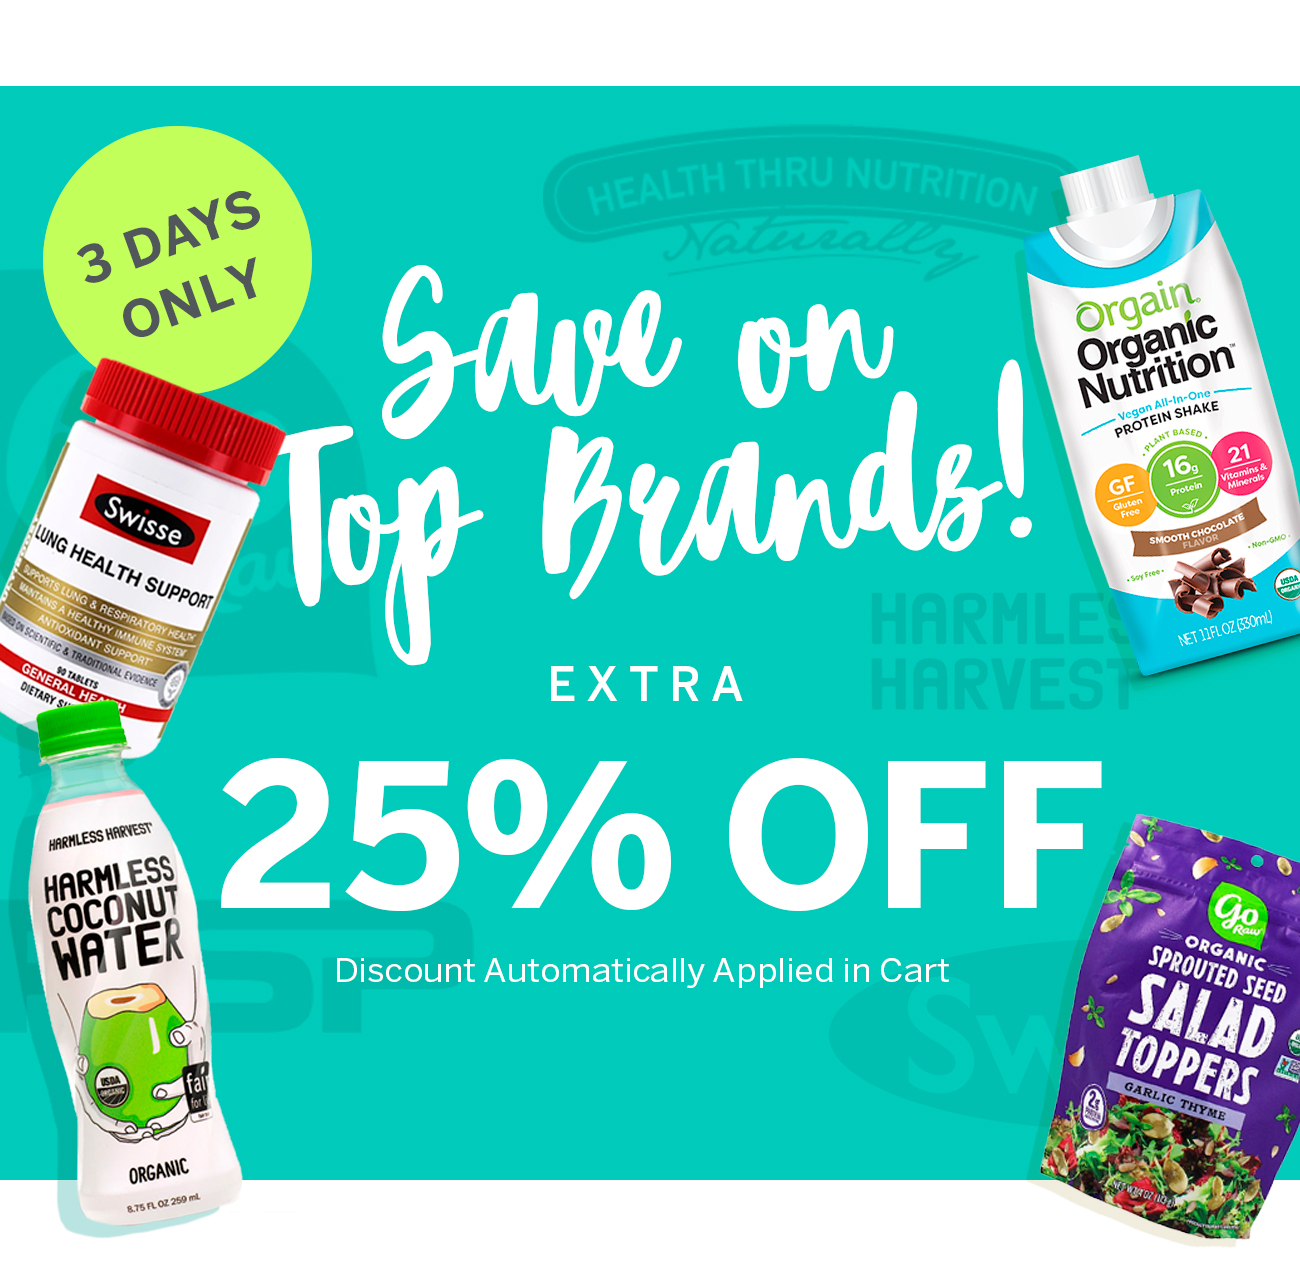 3 Days Only, Save On Top Brands: Extra 25% Off (Discounts Automatically Applied In Cart)